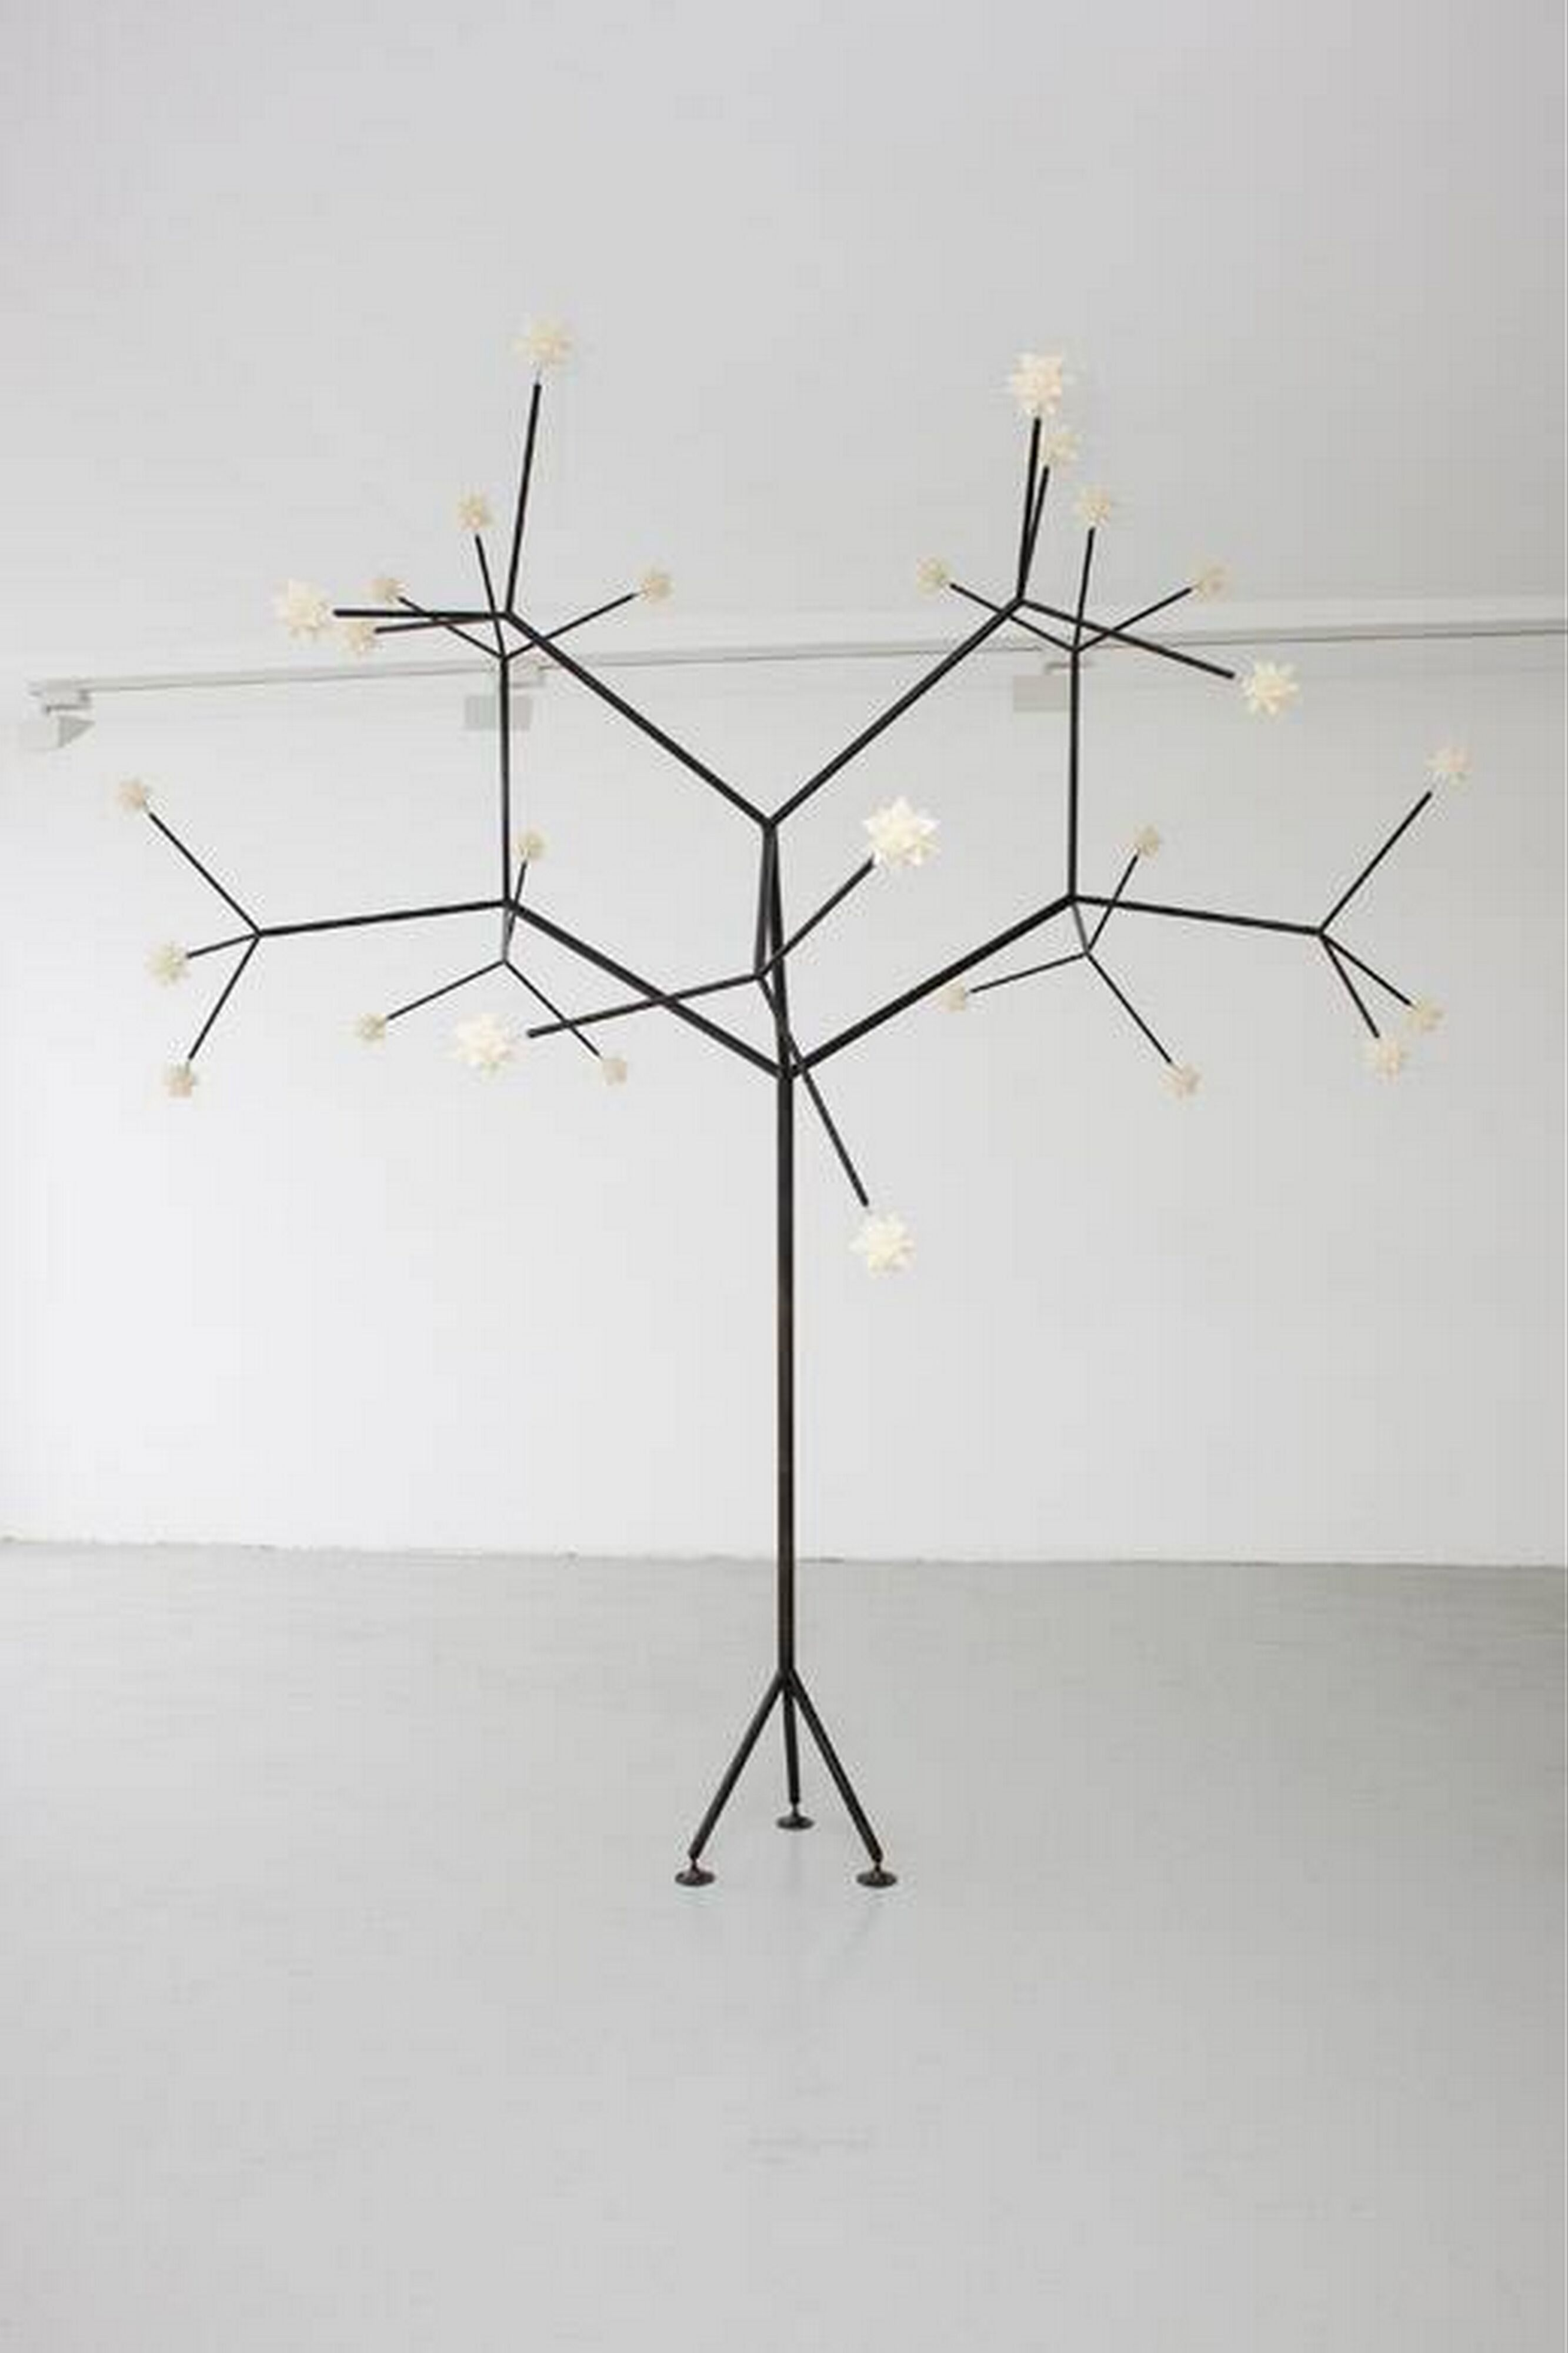 Untitled (Tree no. 1 for the Jadindagadendar)